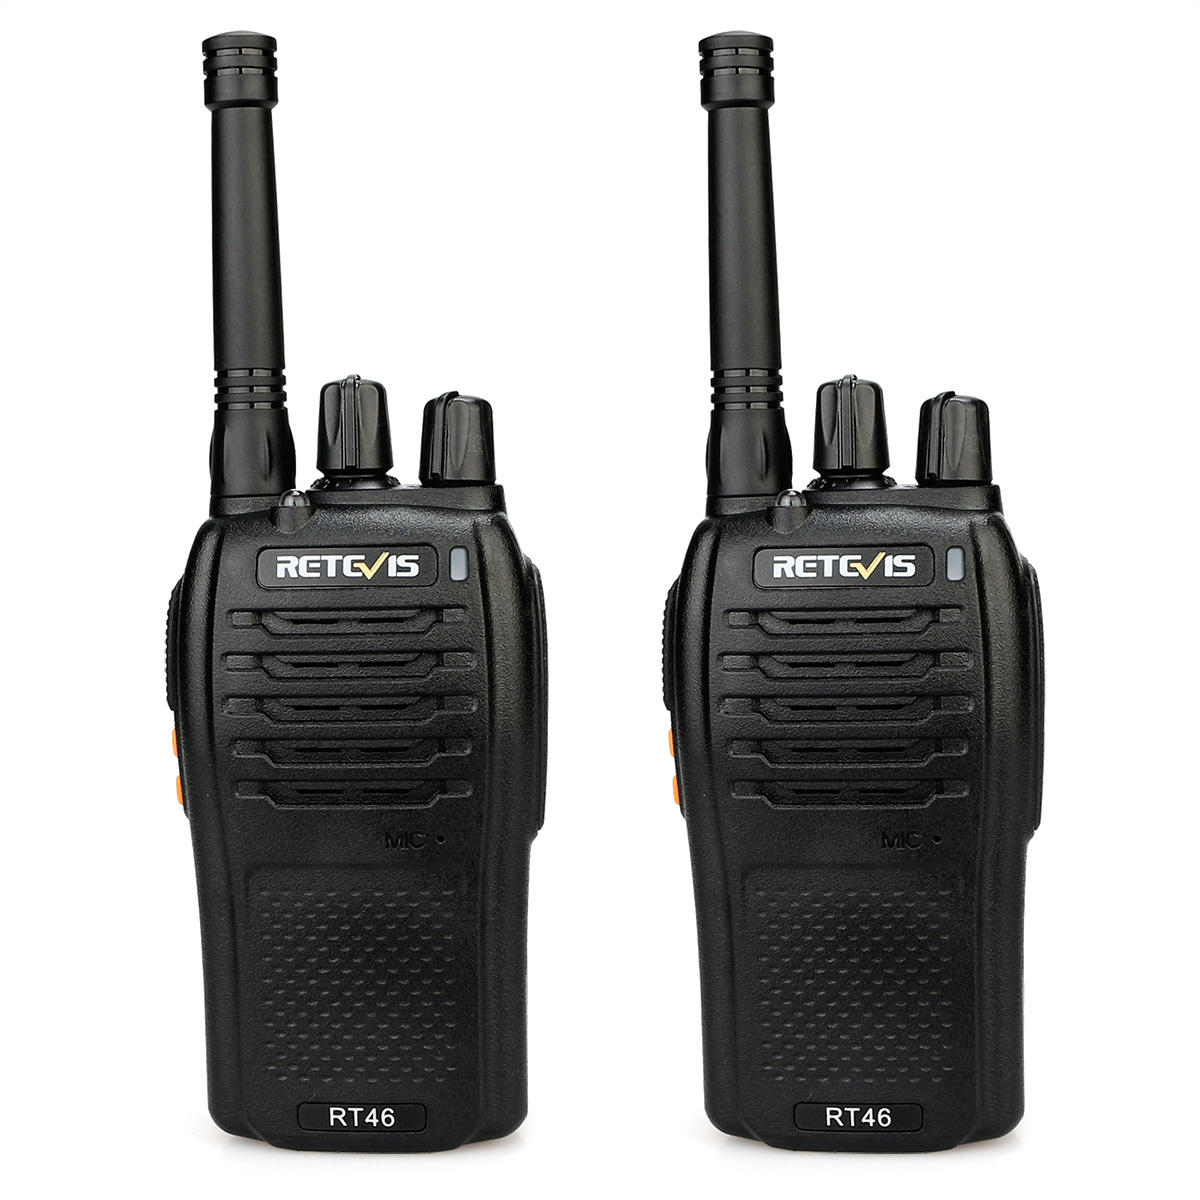 Retevis RT46 License-free Walkie Talkie FRS Monitor Scan SOS Alarm Two Way Radio Station With USB Charging Cable